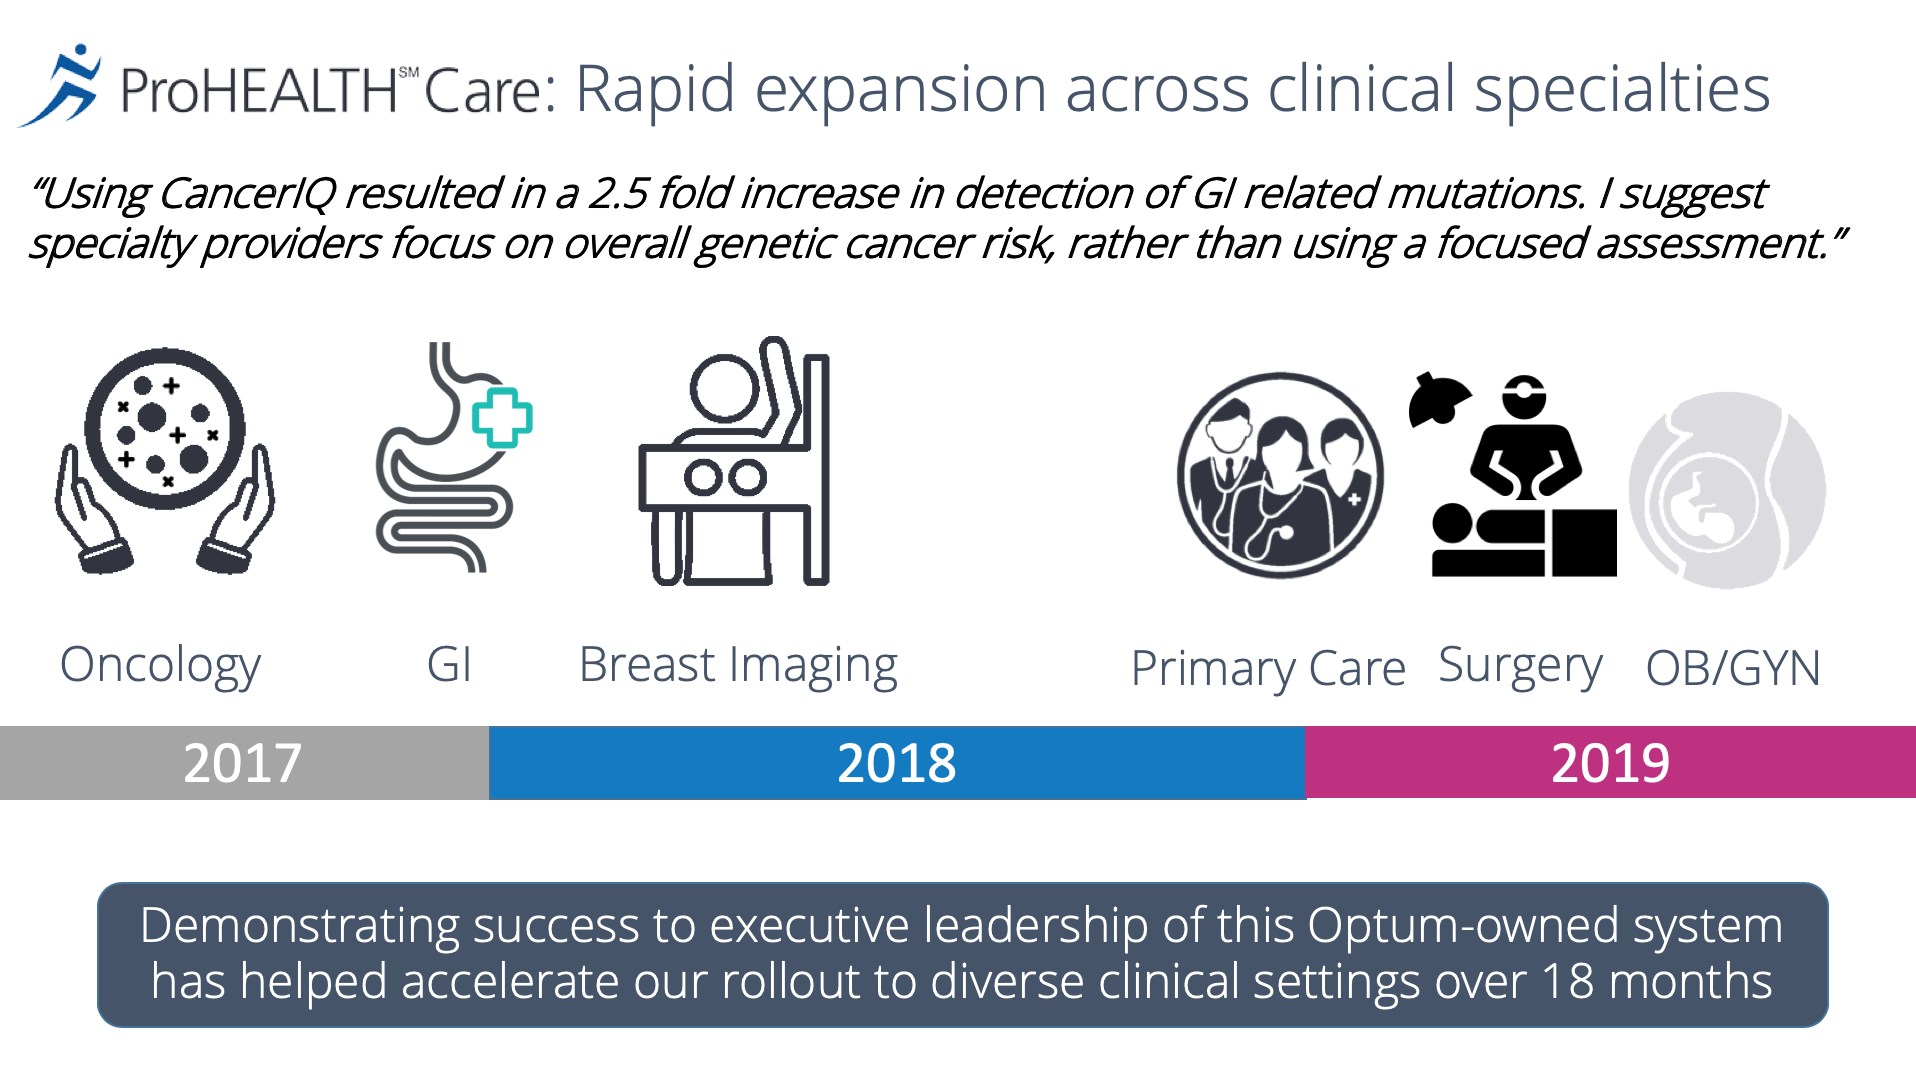 Rapid expansion across clinical specialties